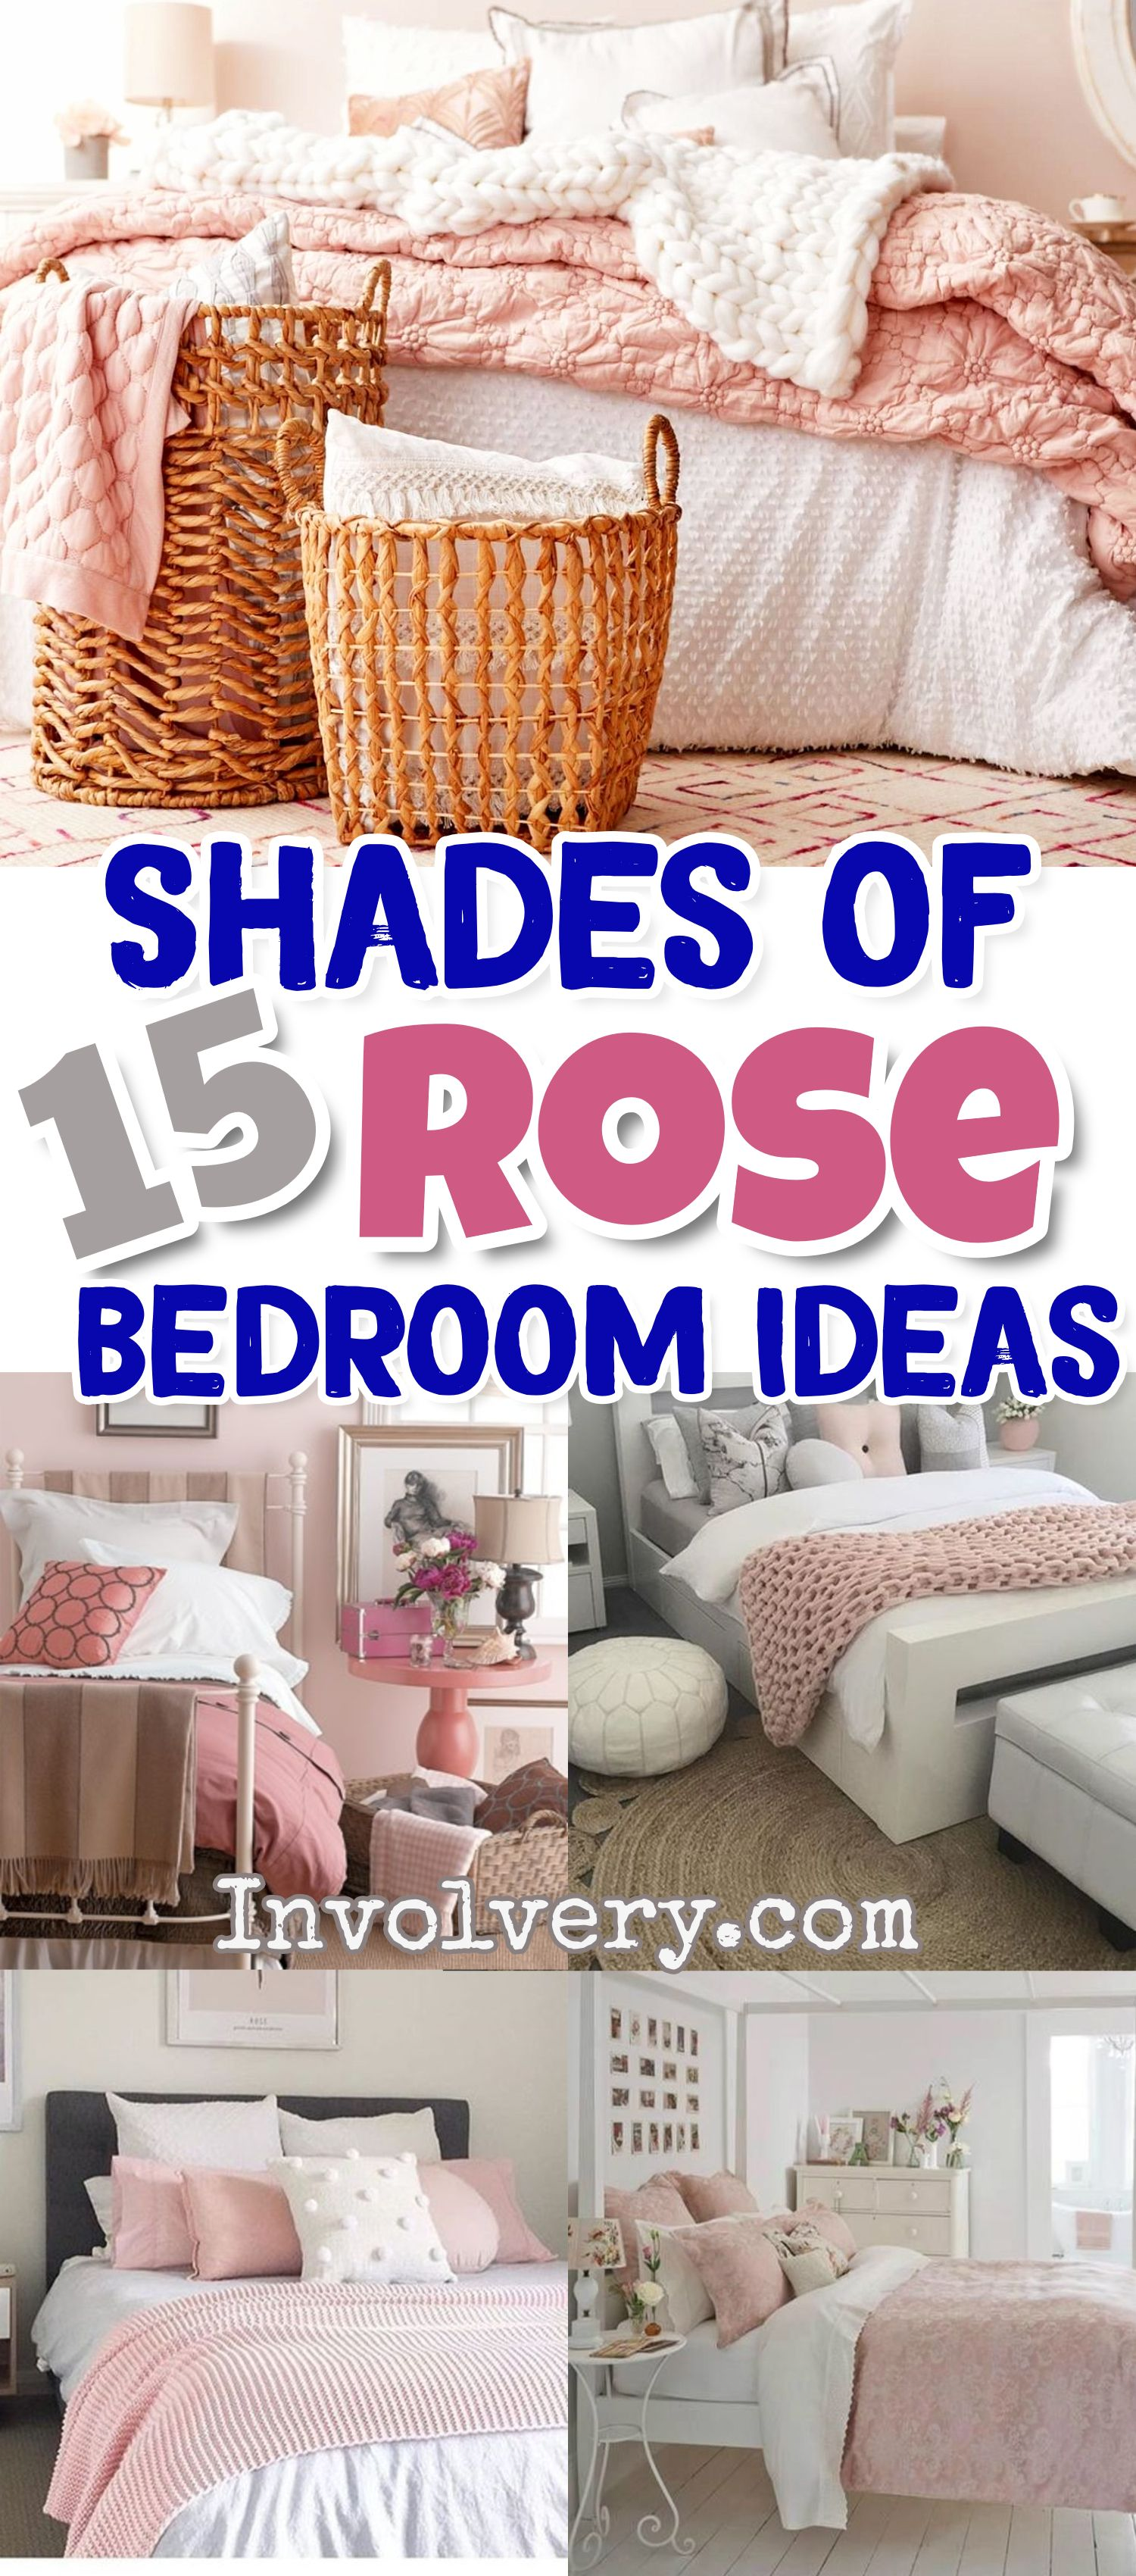 Blush Pink Bedroom Ideas Dusty Rose Bedroom Decor And Bedding I Love Clever Diy Ideas Pink Bedroom Decor Dusty Pink Bedroom Rose Bedroom